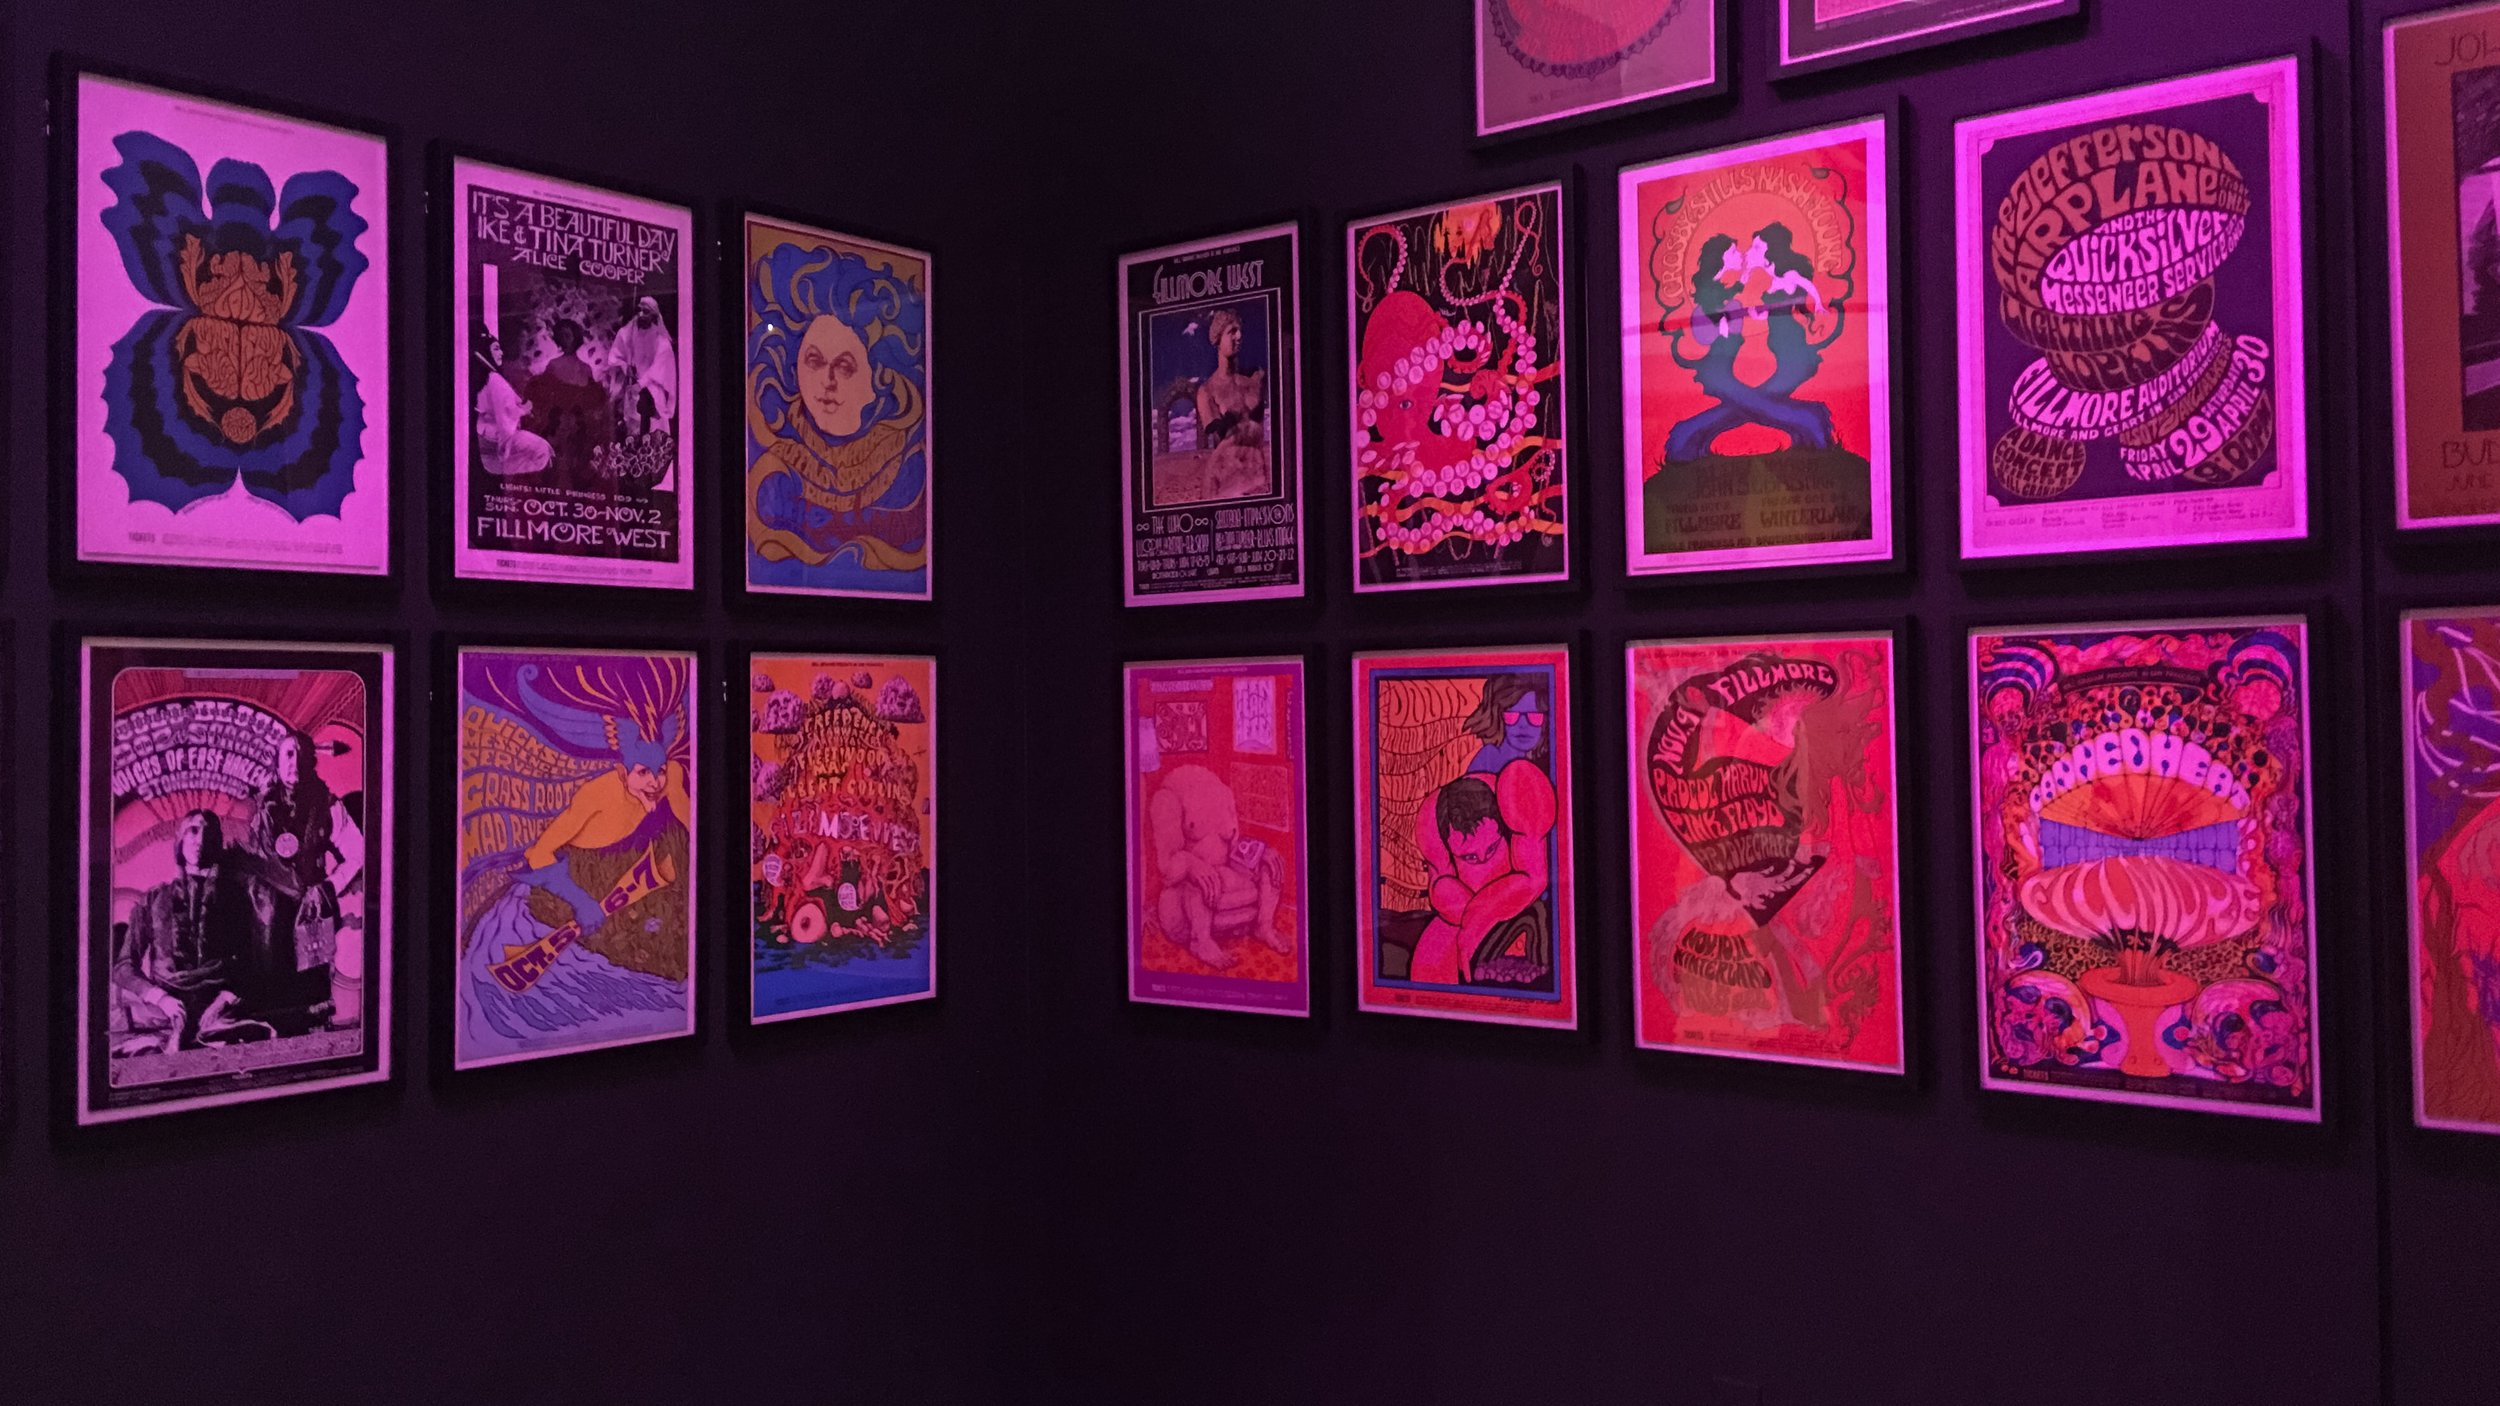 Just a few of the original concert posters from the 60's from venues owned by Bill Graham.